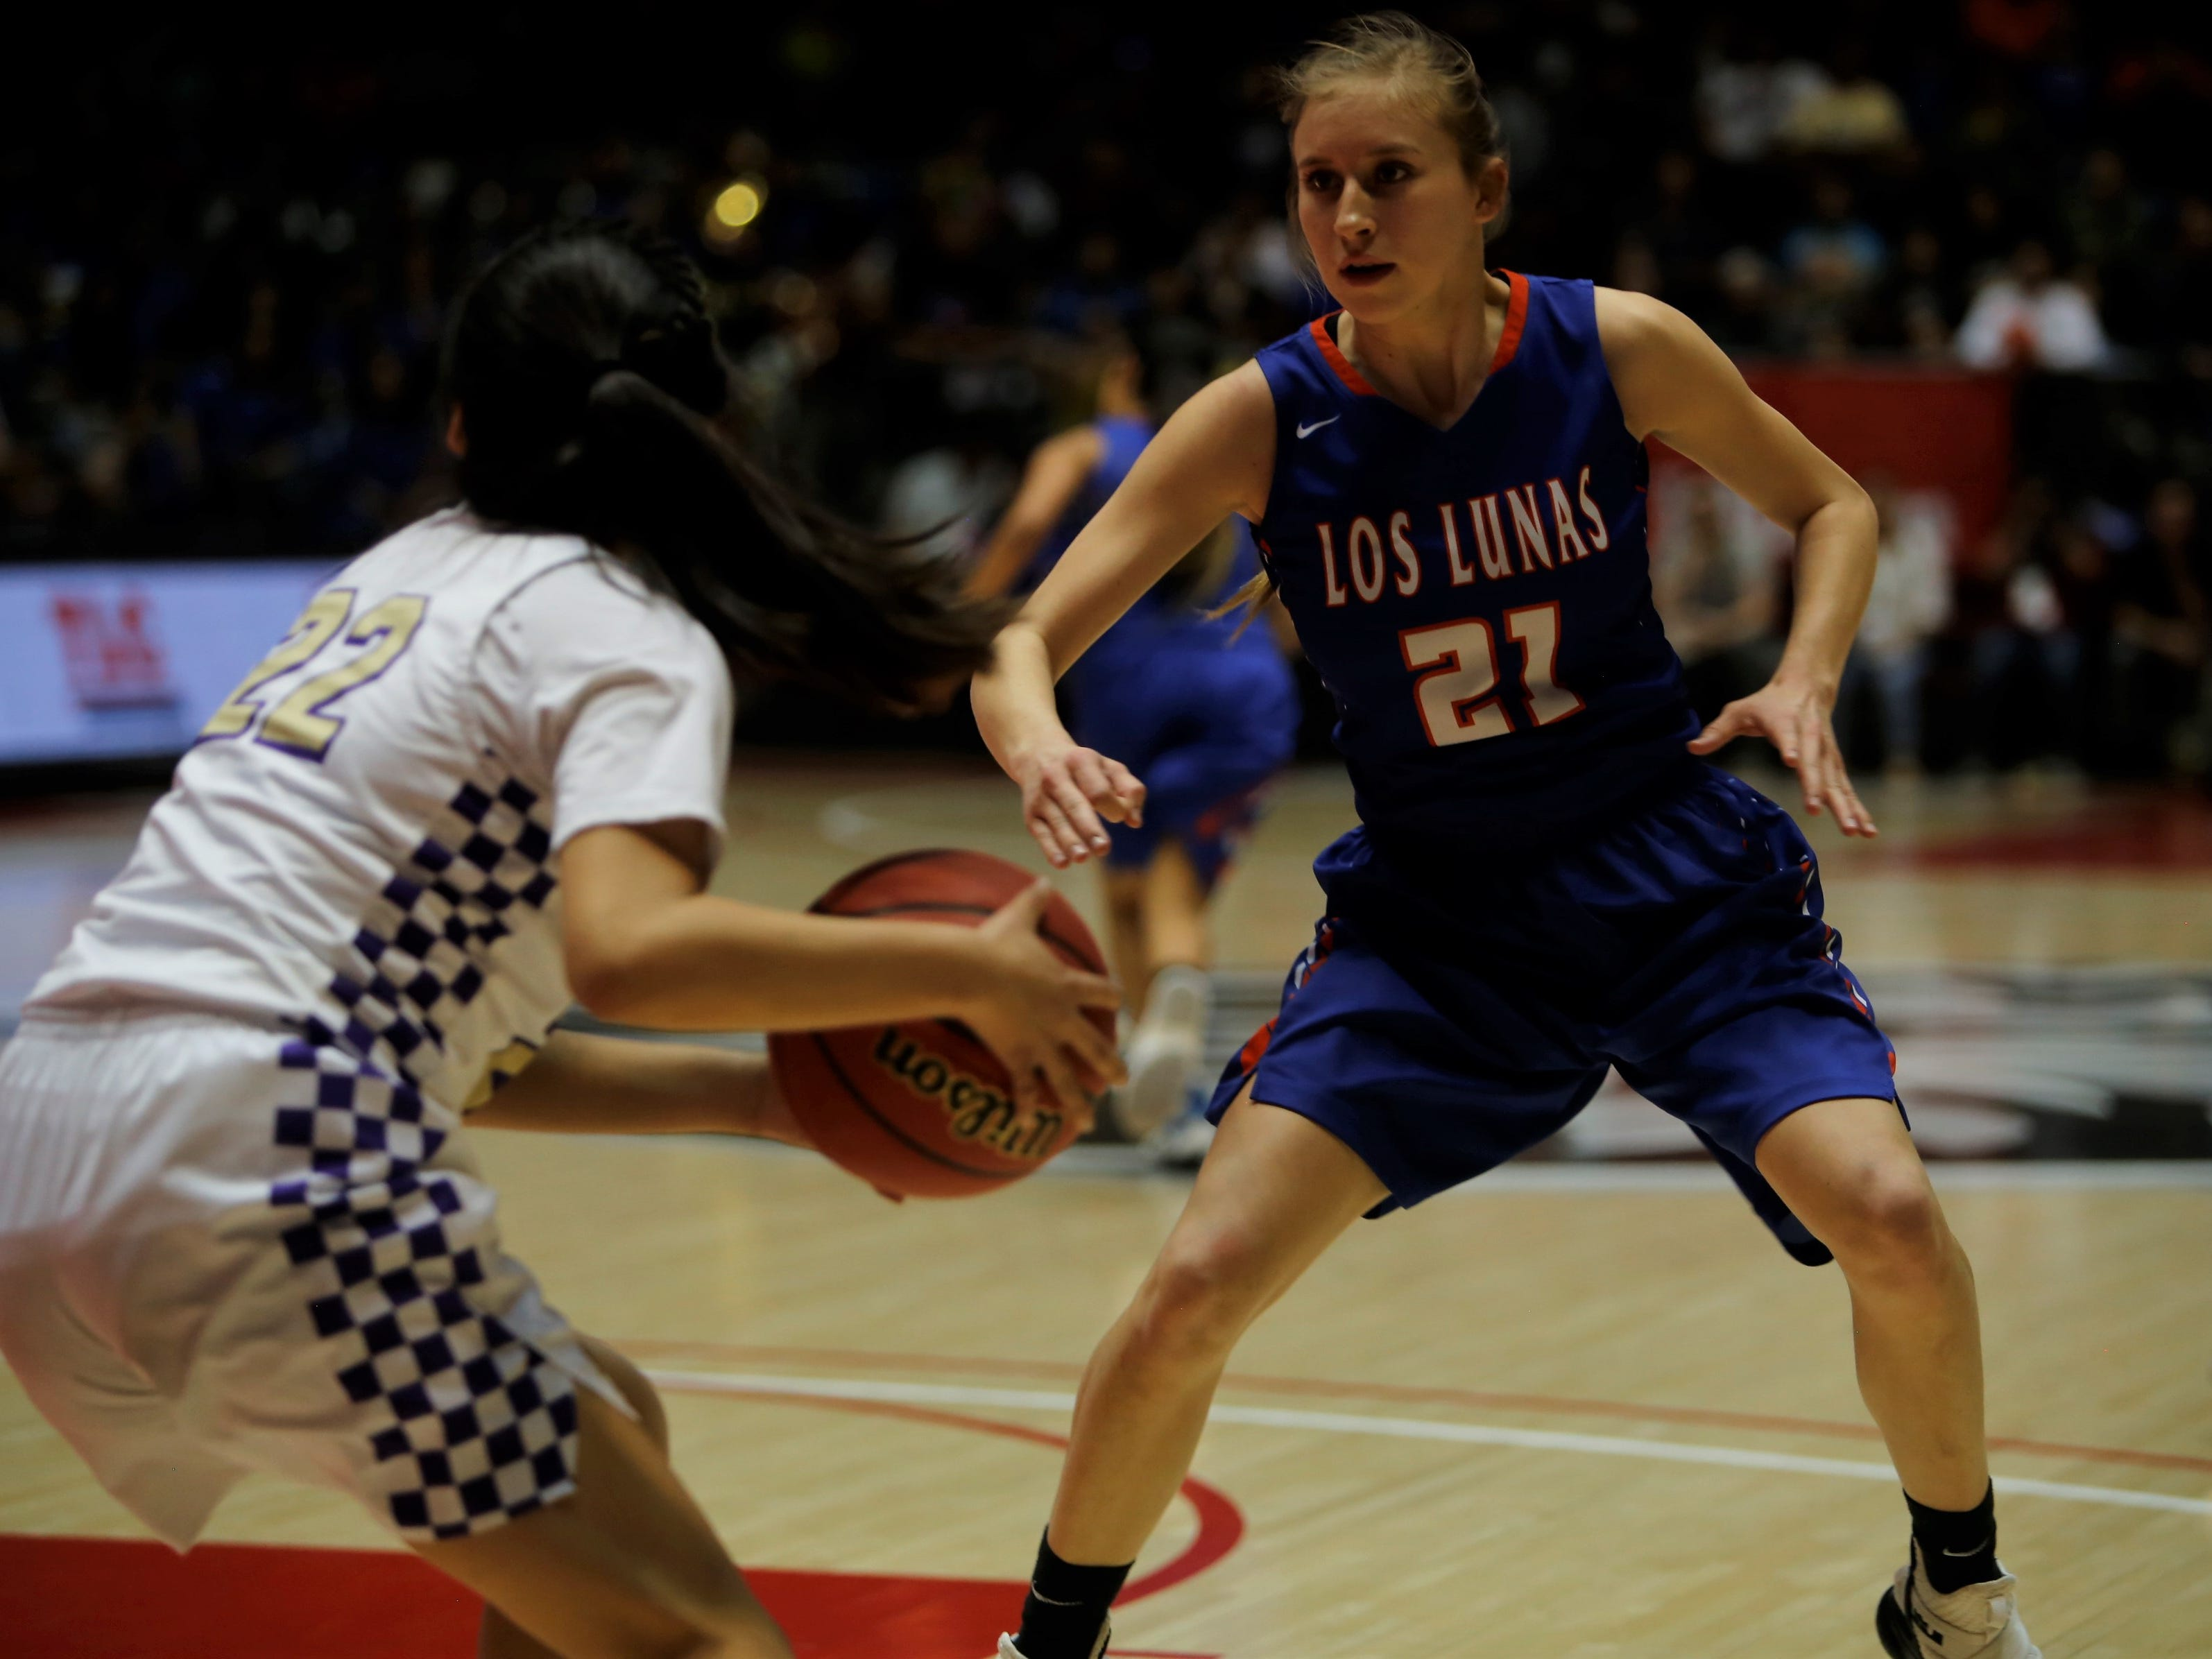 Los Lunas' Jaidyn Schollander looks to get a defensive stop against Kirtland Central's Tatelyn Maheimer during Friday's 4A state championship game at Dreamstyle Arena in Albuquerque.